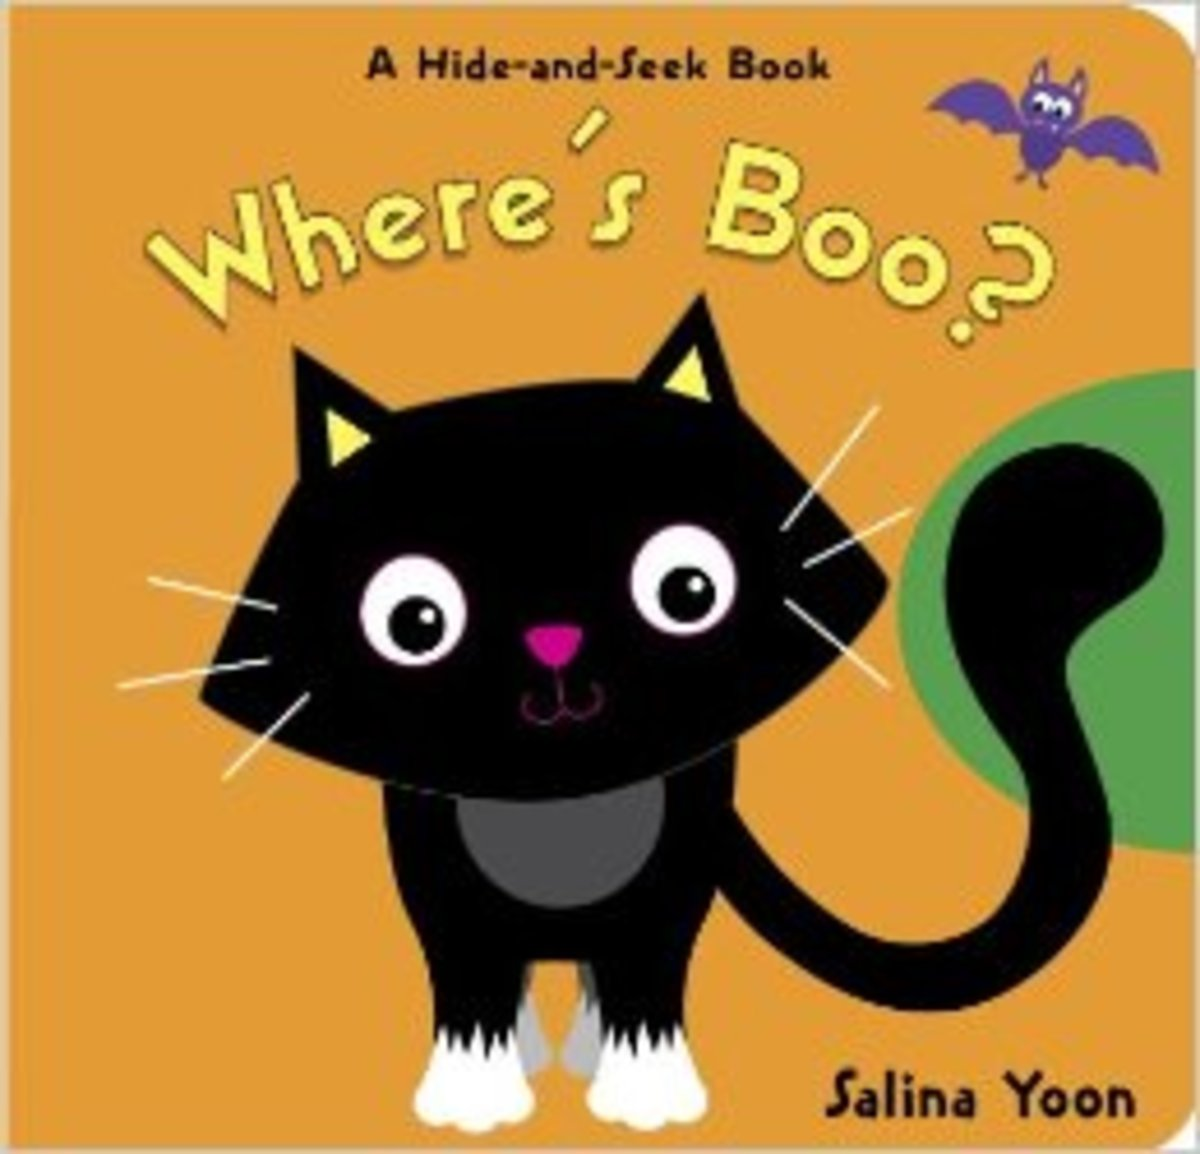 Spooktacular Kids Books for Halloween